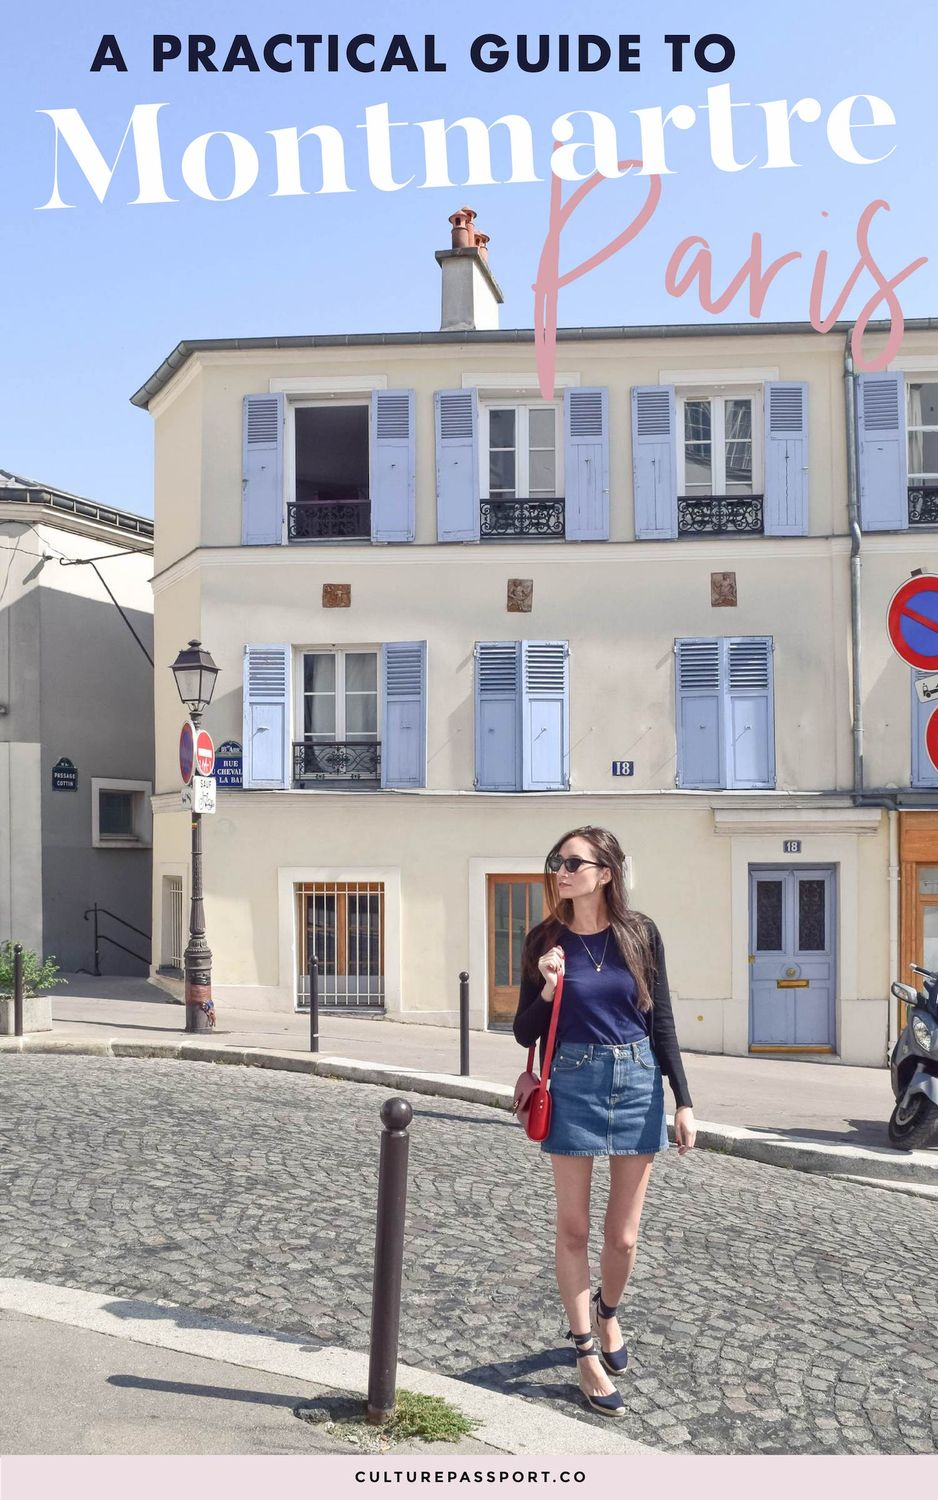 A Practical Guide To Montmartre Paris